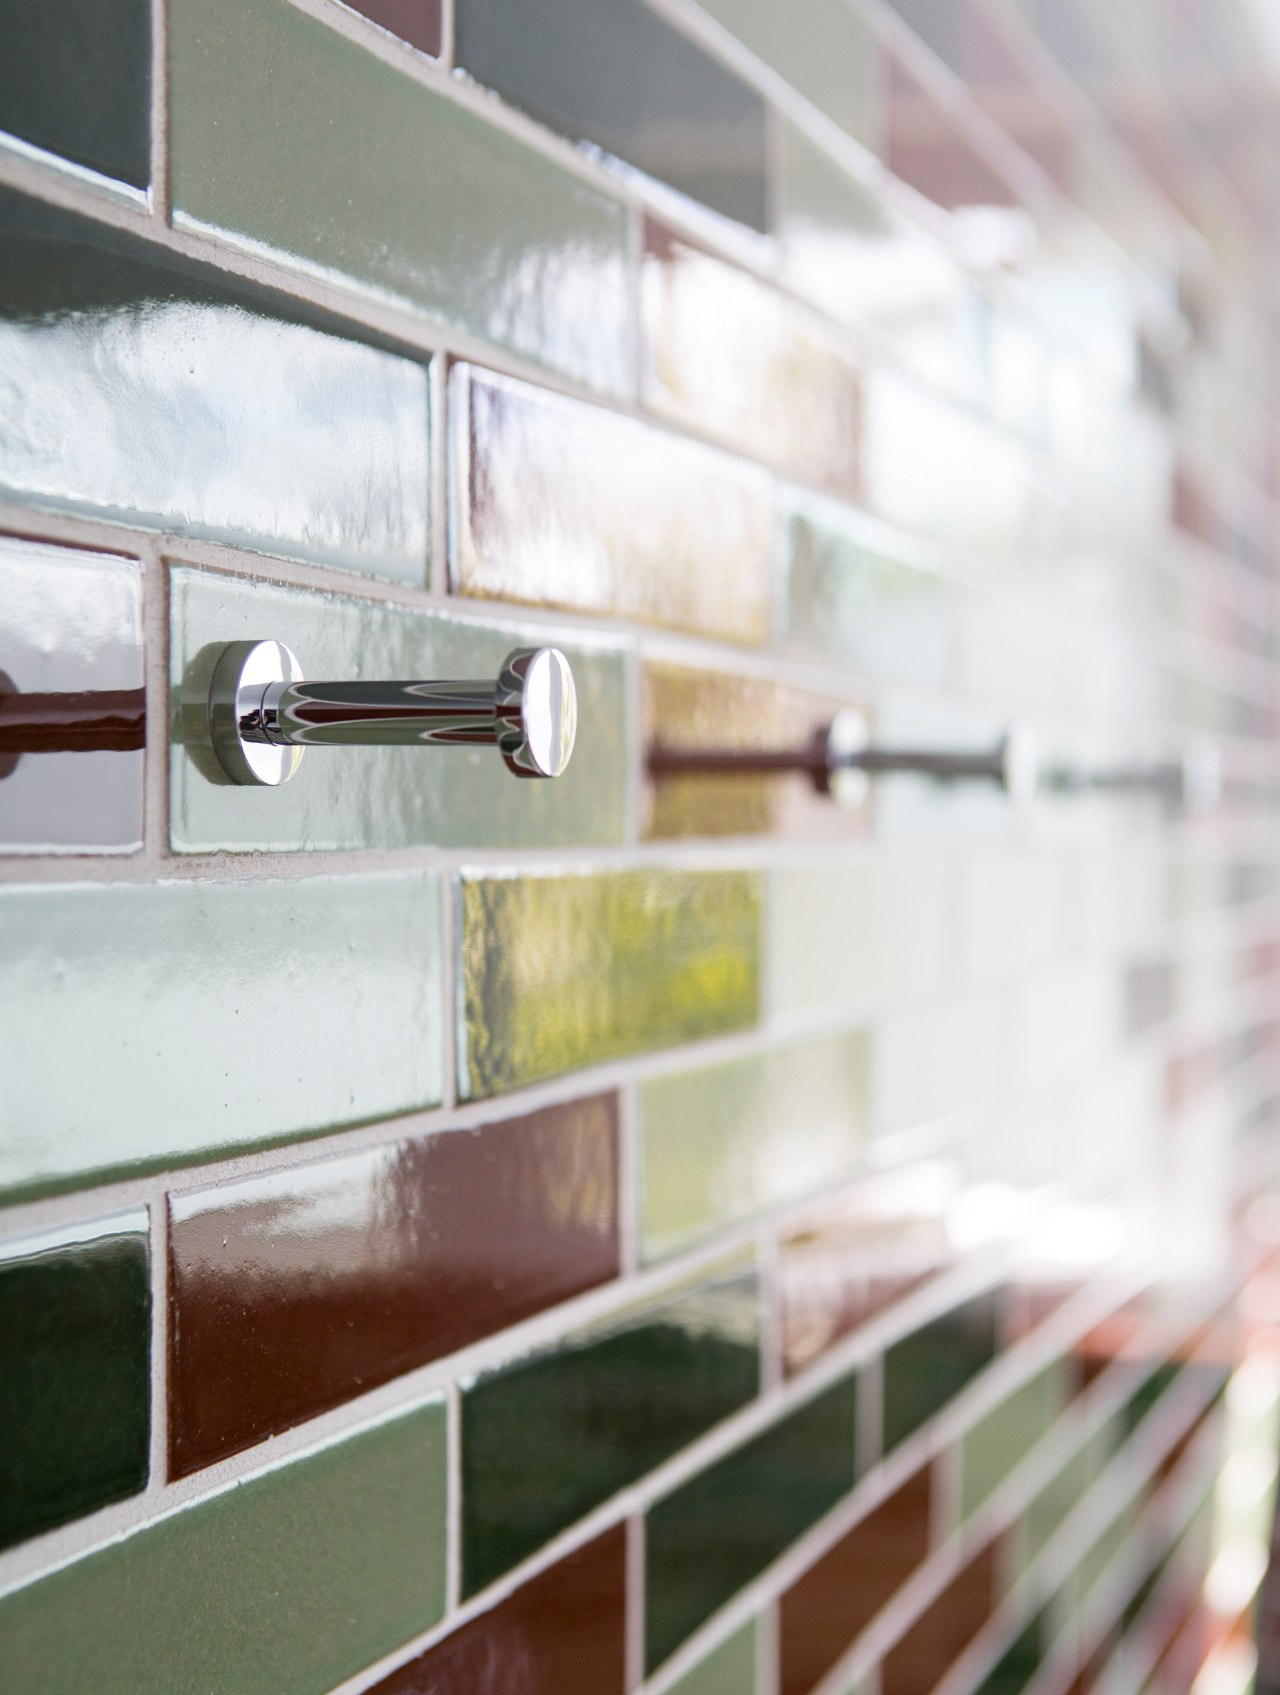 Detail of a tiled wall with towel hooks. floor, furniture, glass, shelf, shelving, wall, window, wood, white